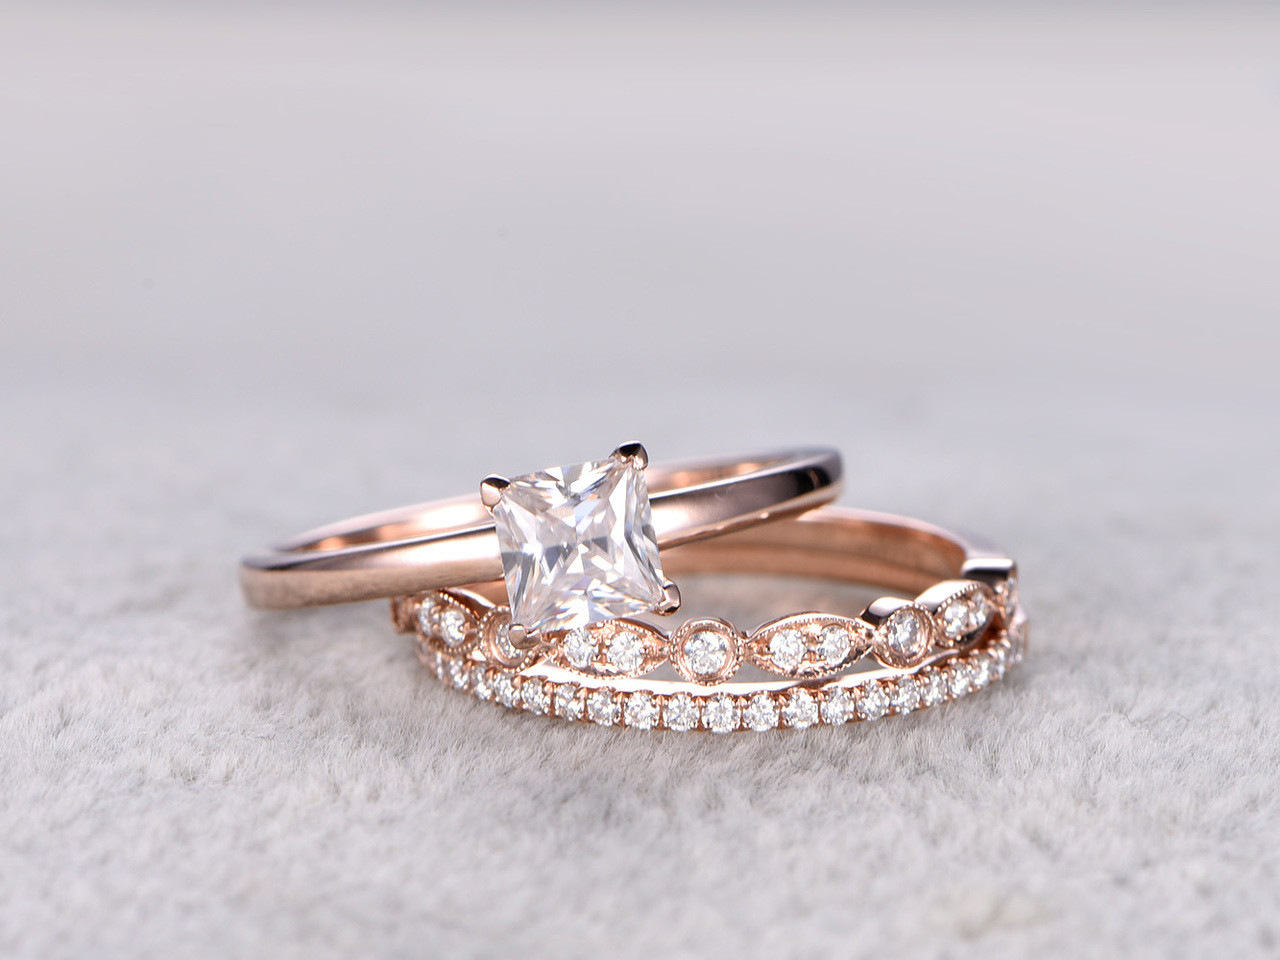 forever and engagement ring solitaire moiss camille shank one paired products wedding pav bands a moissanite or pave hearts arrows view with center supernova mod ps of v diamond side band